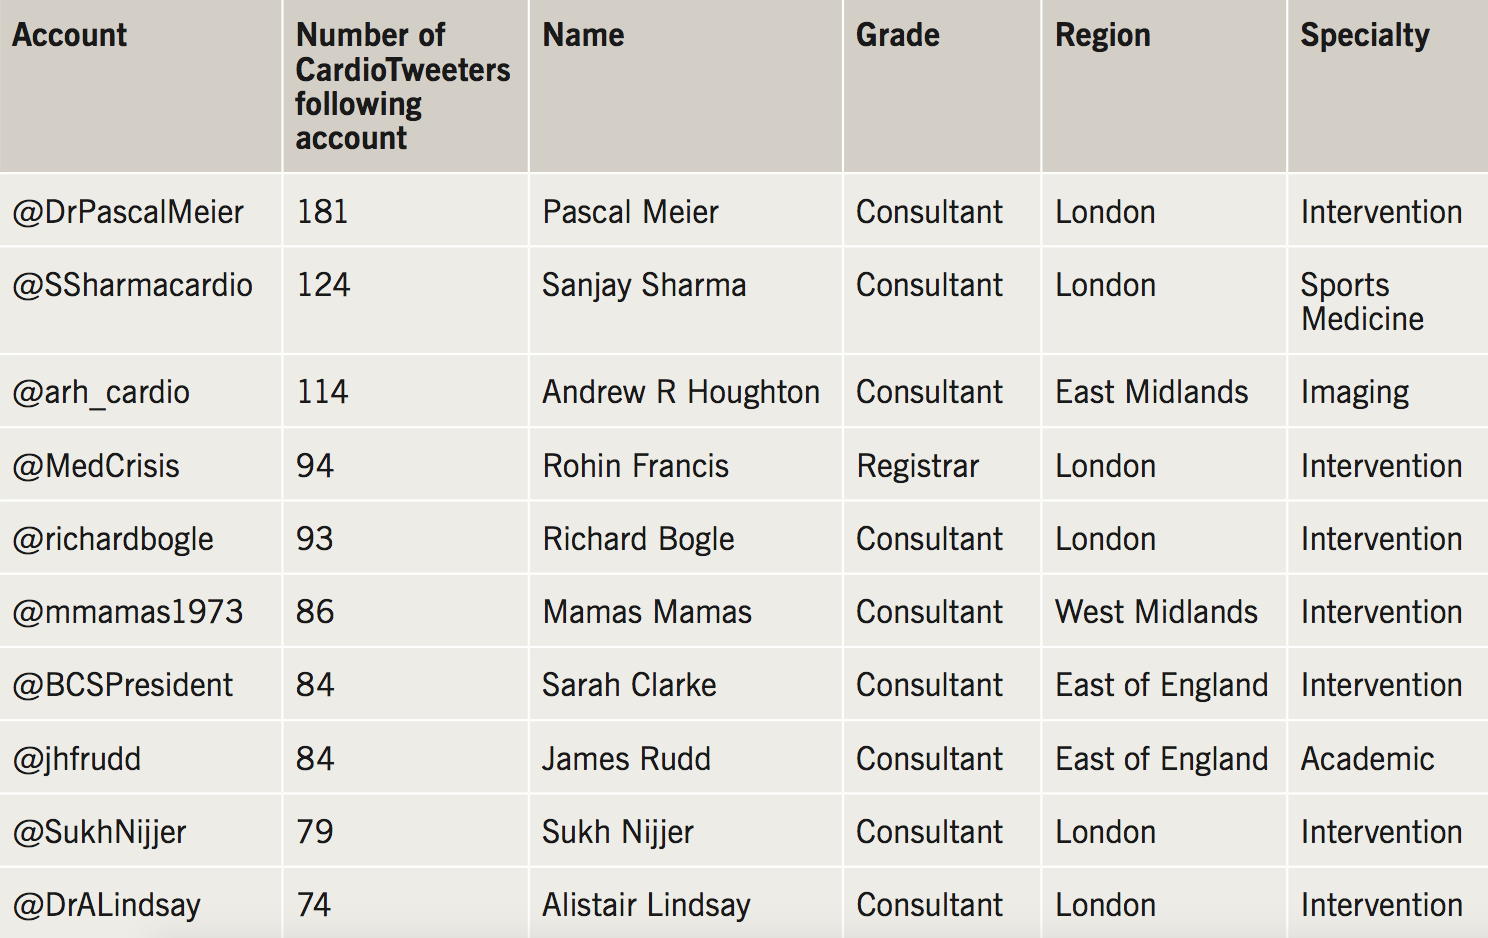 Hudson - Table 2. Most followed UK CardioTweeter by other UK CardioTweeters